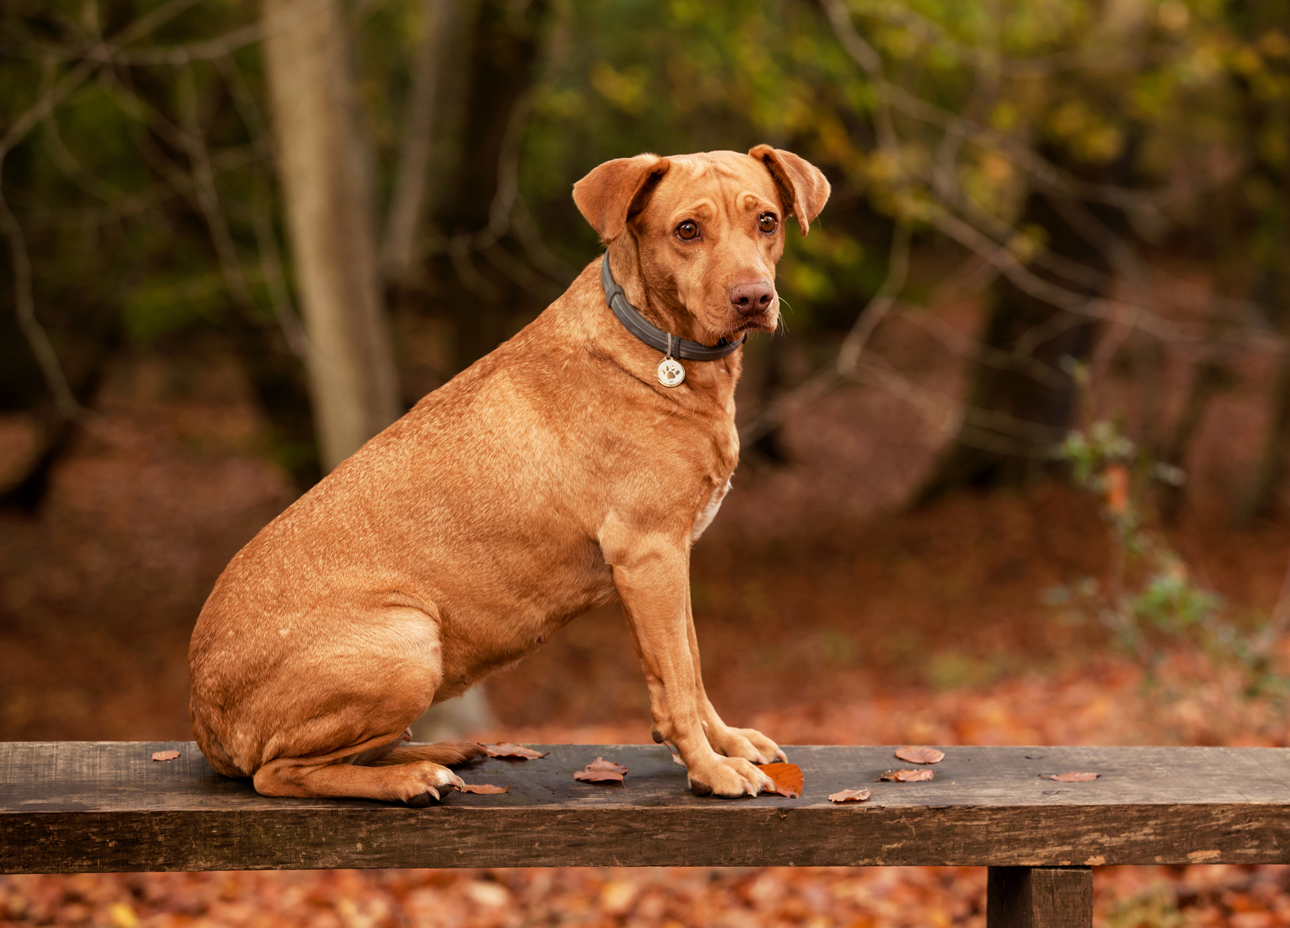 Clare J Sheridan Photography - Ginger mixed breed dog sat on bench in forest